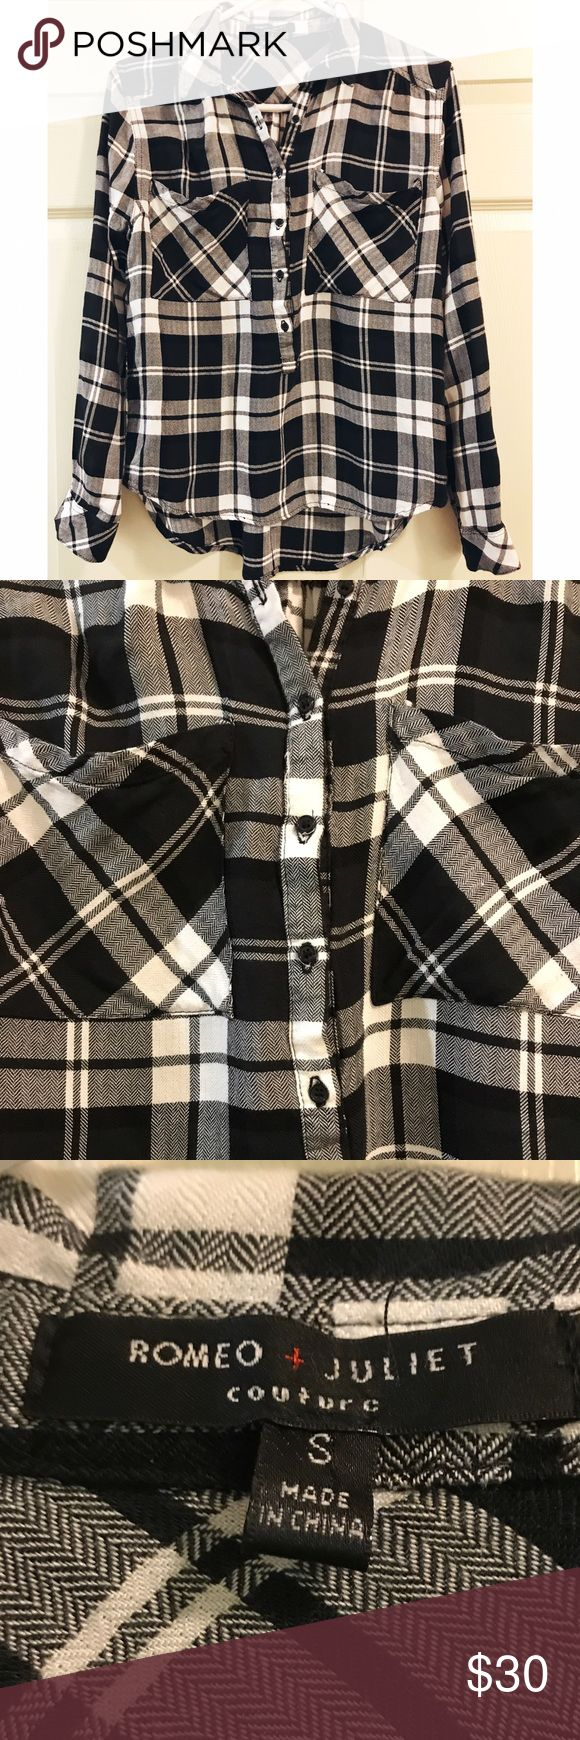 Romeo & Juliet Couture • Flannel Tunic Romeo & Juliet Couture • Flannel Tunic. Beautiful soft black and white plaid. Size small. Cute for back to school, or just to wear with shorts in the summer! Romeo & Juliet Couture Tops Tunics